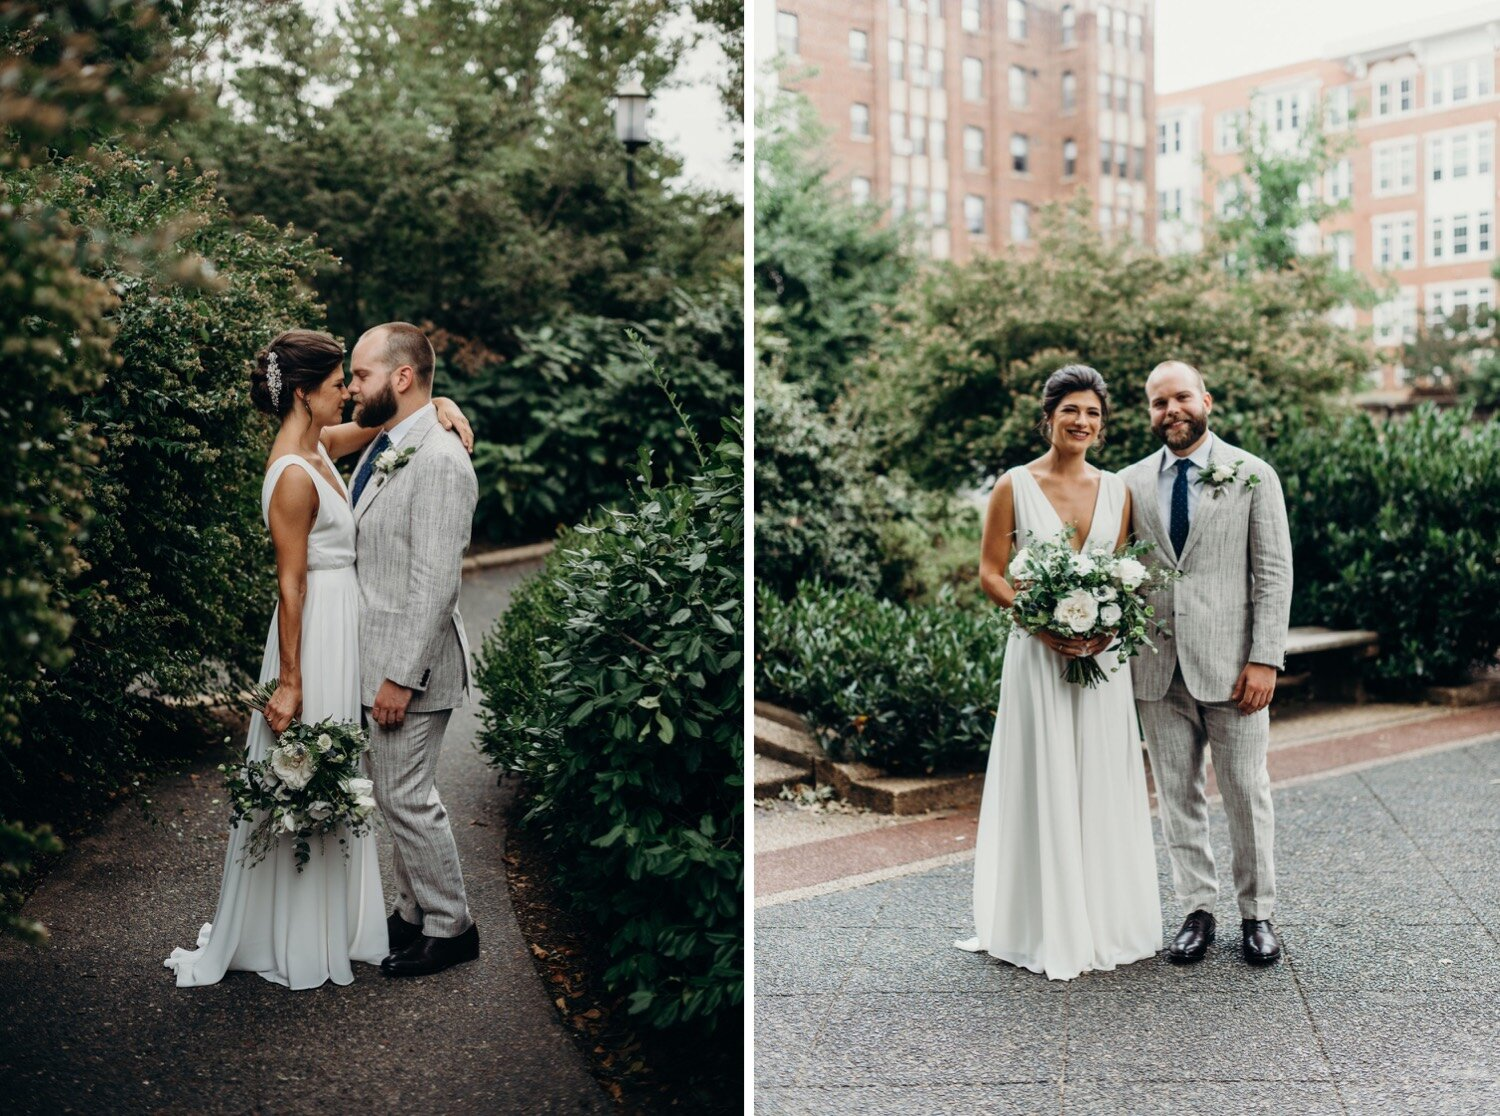 21_photographer_hill_meridian_park_urban_dc_washington_wedding.jpg